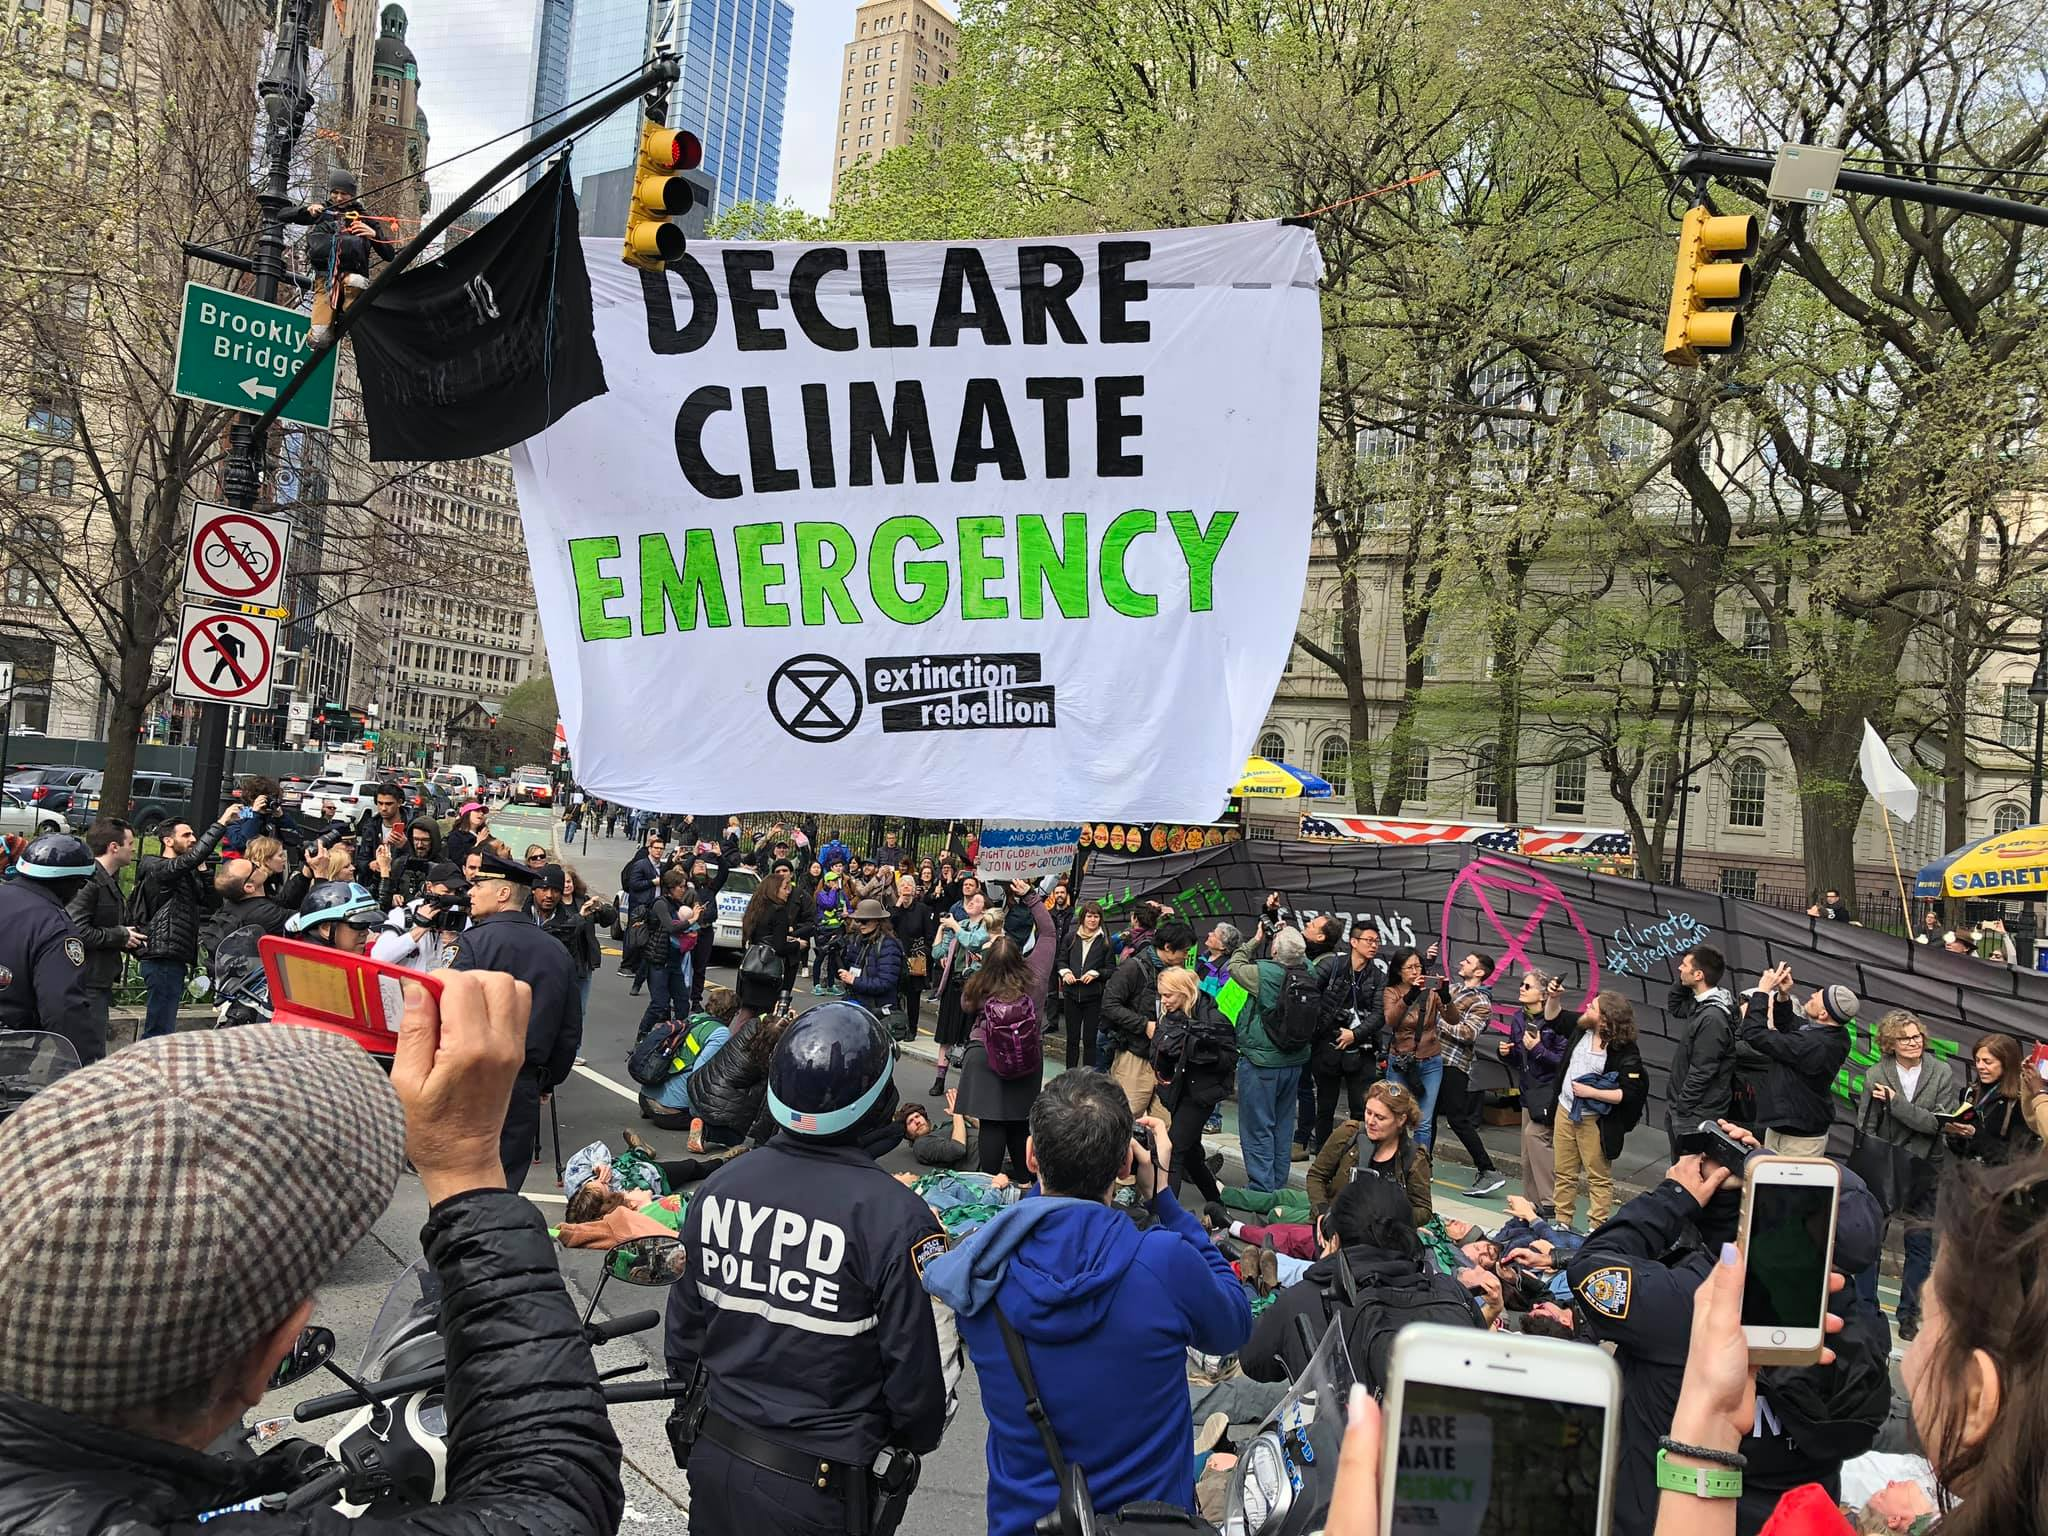 Extinction Rebellion NYC takes to the streets of New York to demand a Climate Emergency be declared in one of the most vulnerable cities in the U.S. to climate disaster. (Image: XR NYC on Facebook)